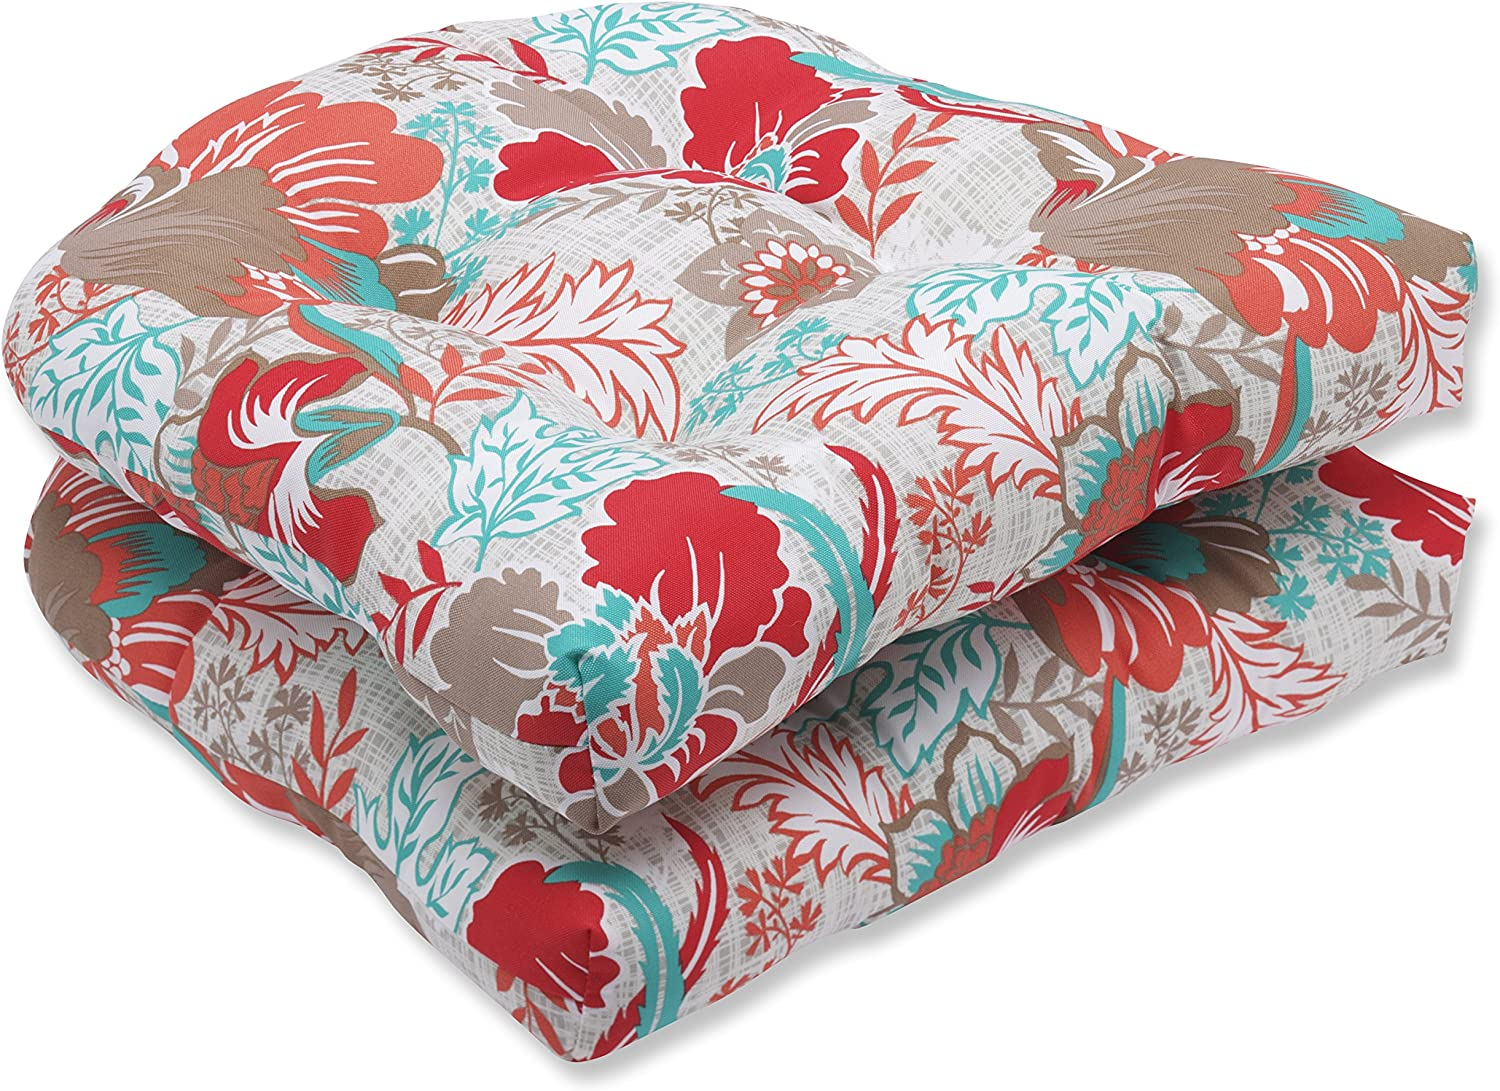 Pillow Perfect Outdoor Suzanne Spring Wicker Seat Cushion, Multicolored, Set of 2